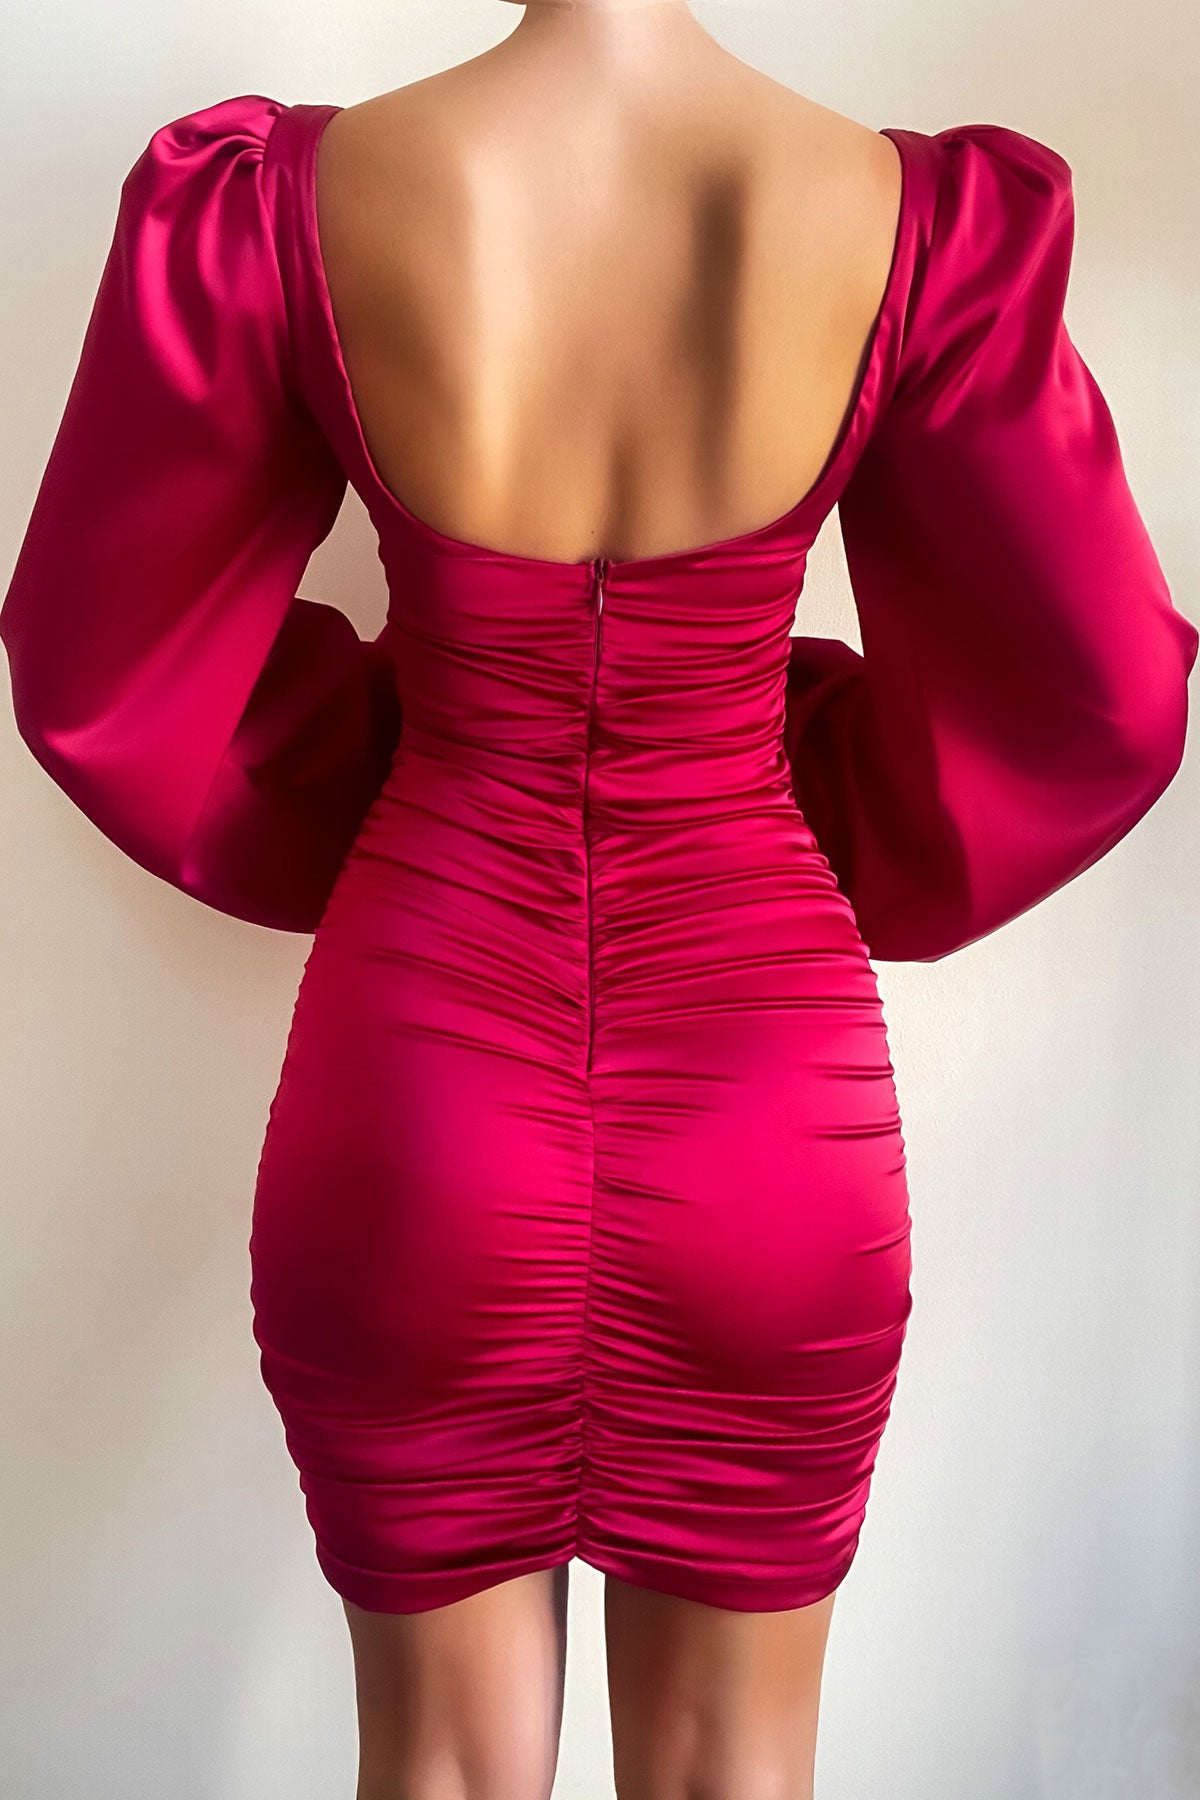 Sleeve Drama - Red Satin Dress